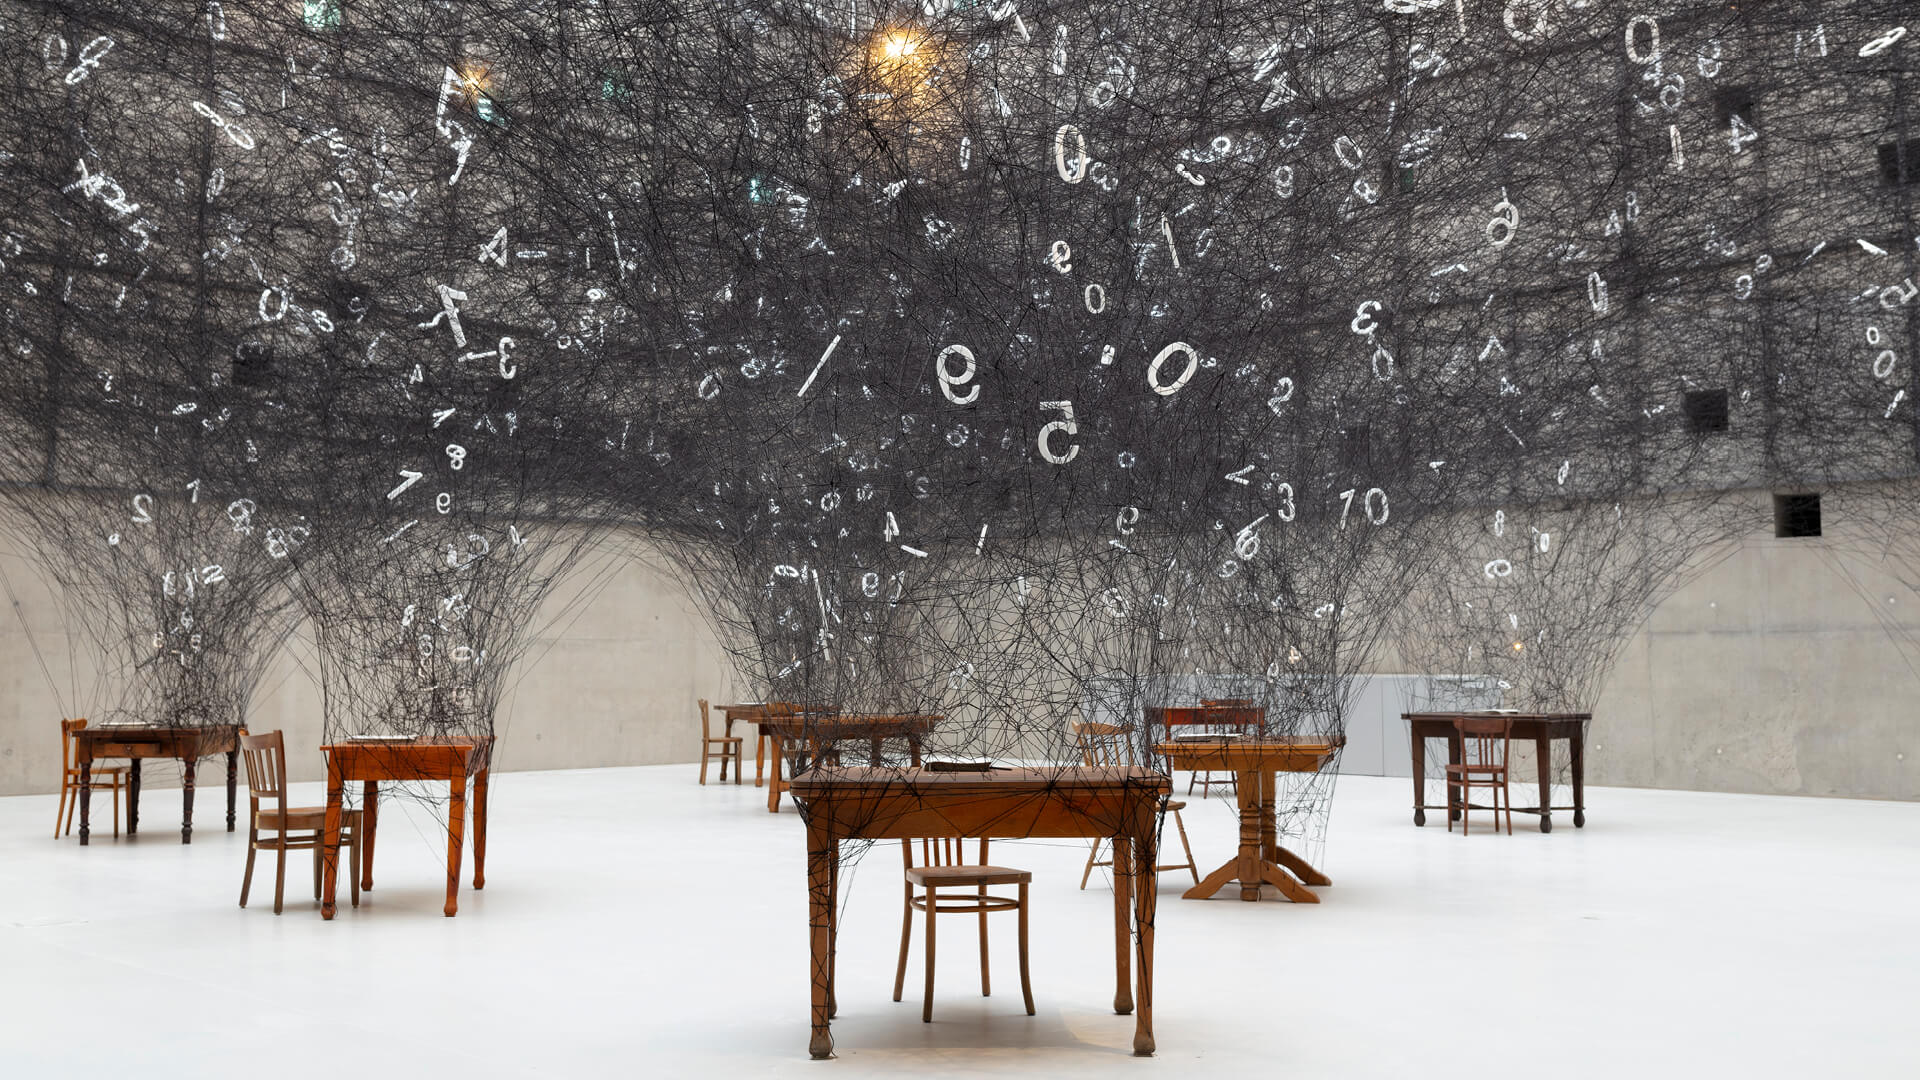 Chiharu Shiota's Counting Memories on display at the Silesian Museum at Katowice | Counting Memories | Chiharu Shiota | STIRworld